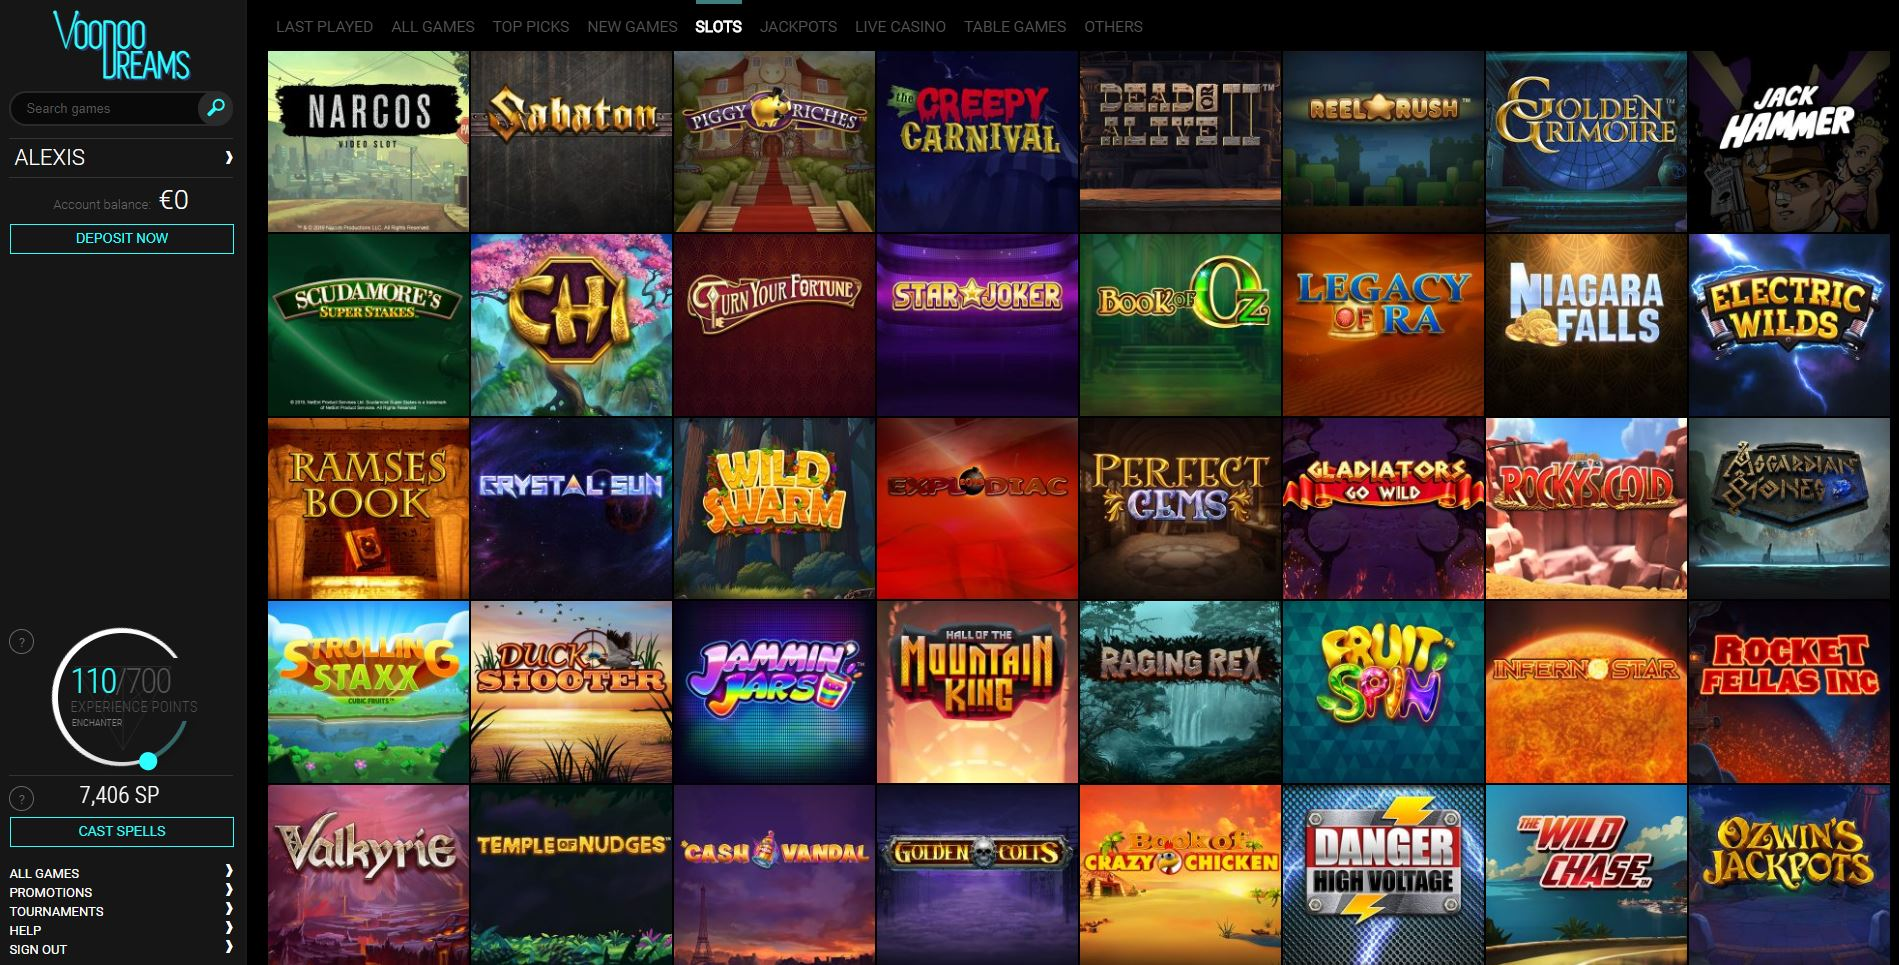 Slots Lobby at Voodoo Dreams Online Casino